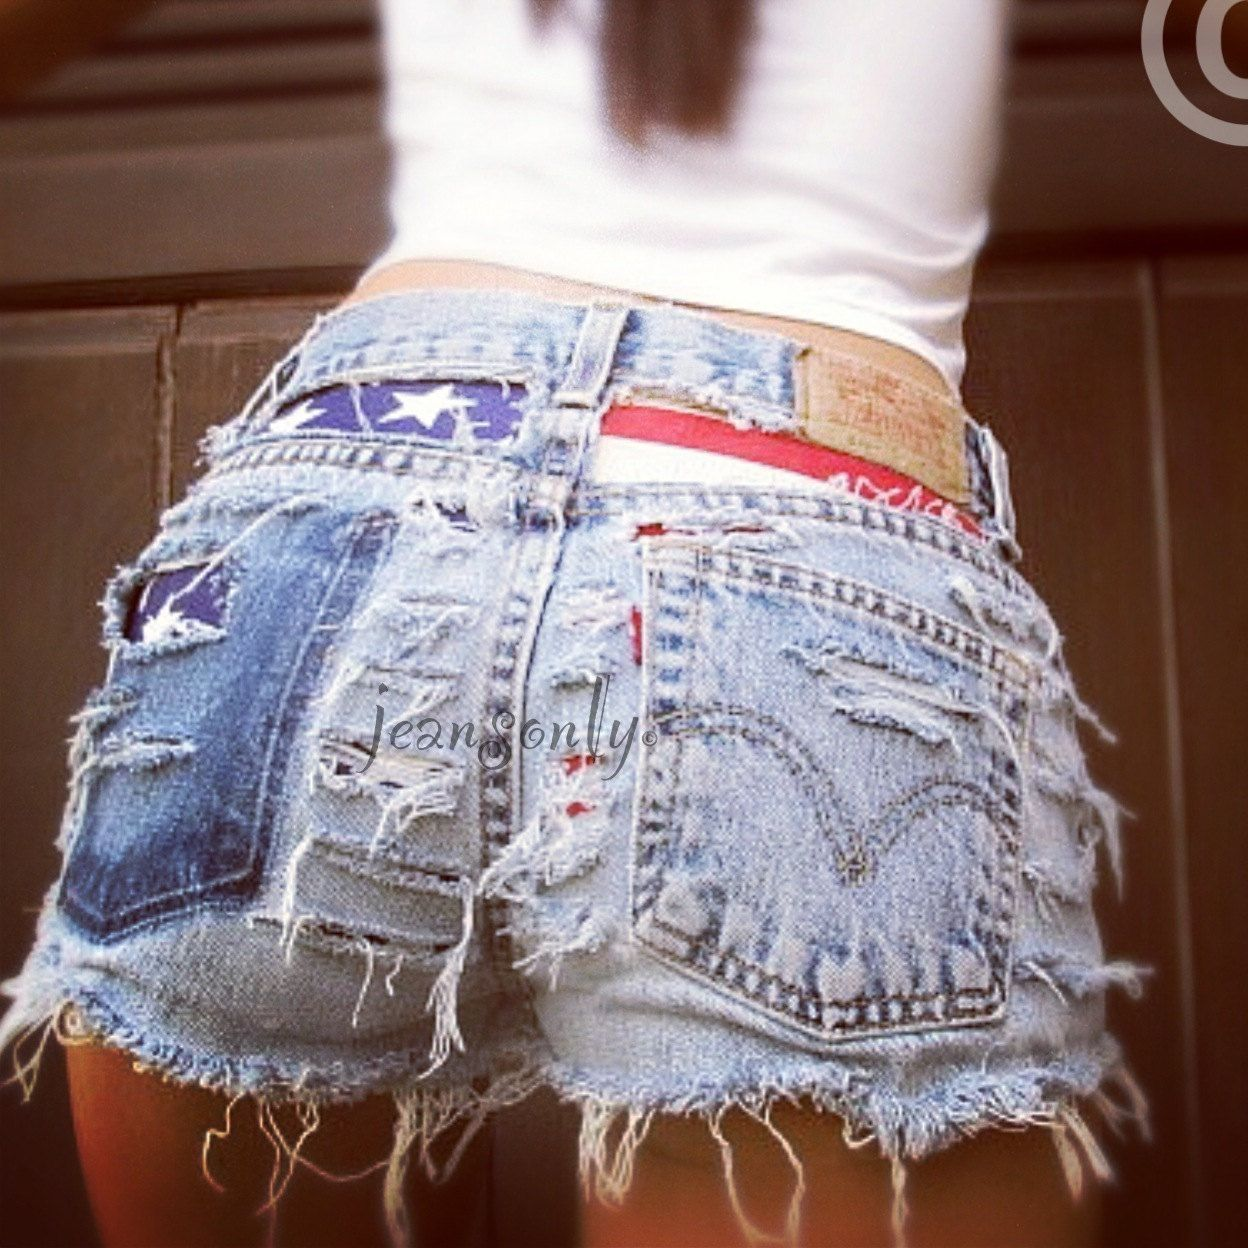 88e6207043 Vintage Levis High waisted destroyed American flag shorts by Jeansonly.  $54.99, via Etsy.